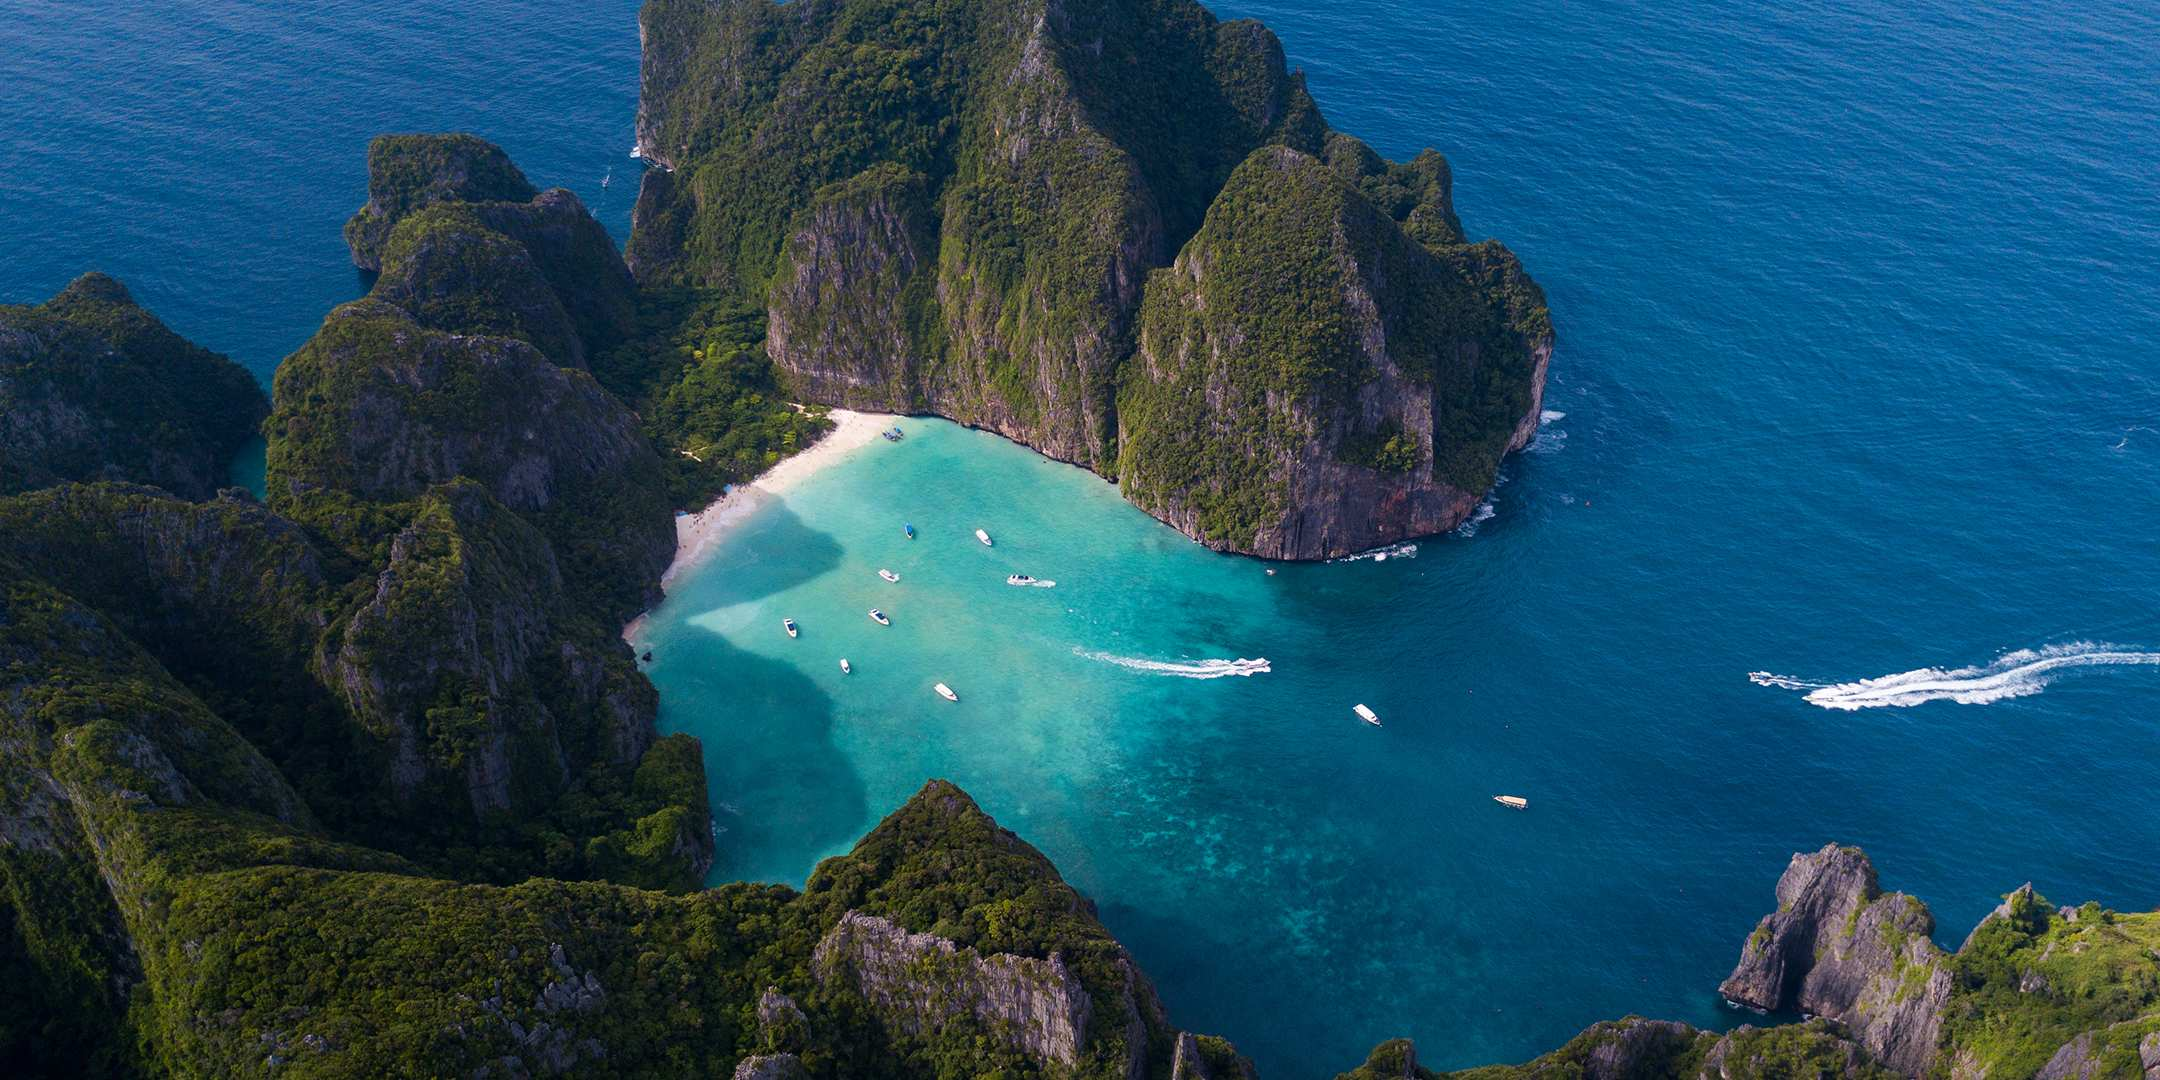 us_tm_1603_0318_blog-best-summer-vacation-spots_thailand.jpg